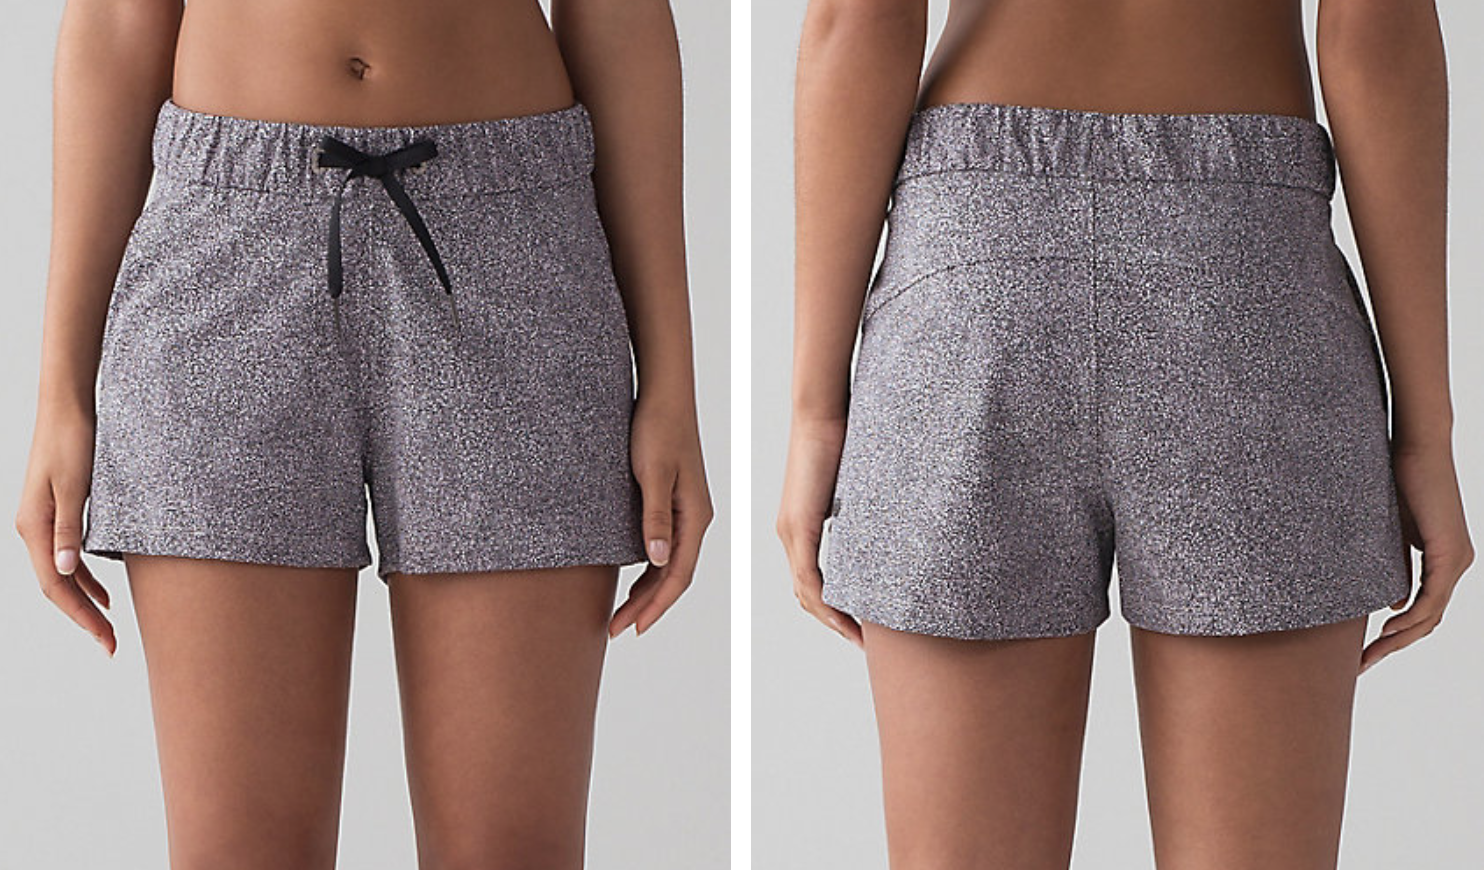 https://api.shopstyle.com/action/apiVisitRetailer?url=https%3A%2F%2Fshop.lululemon.com%2Fp%2Fwomen-shorts%2FOn-The-Fly-Short%2F_%2Fprod8430791%3Frcnt%3D64%26N%3D1z13ziiZ7vf%26cnt%3D85%26color%3DLW7AG7S_028694&site=www.shopstyle.ca&pid=uid6784-25288972-7